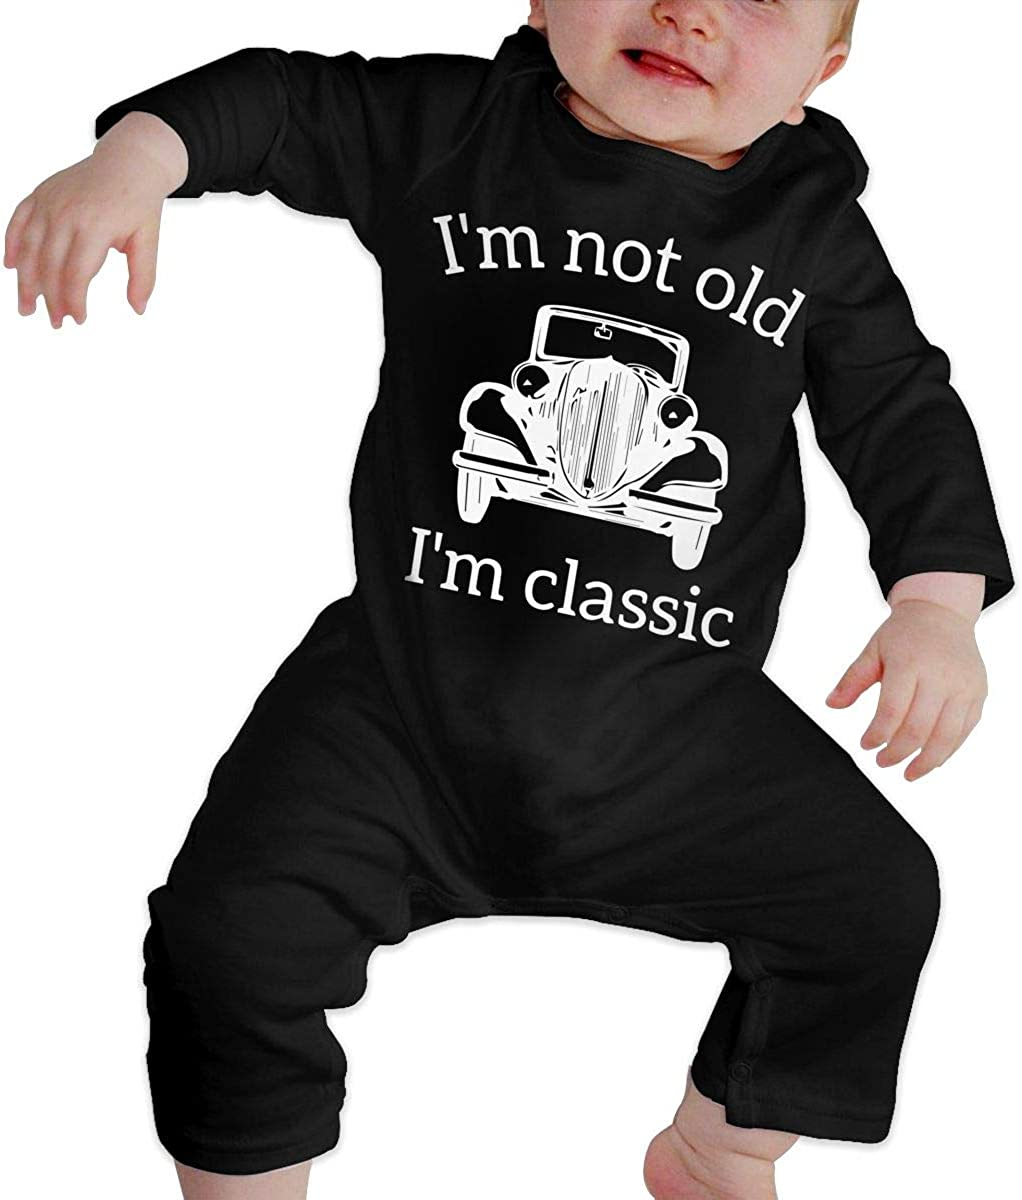 Im Not Old Im Classic Printed Baby Boys Girls One-Piece Suit Long Sleeve Outfits Black